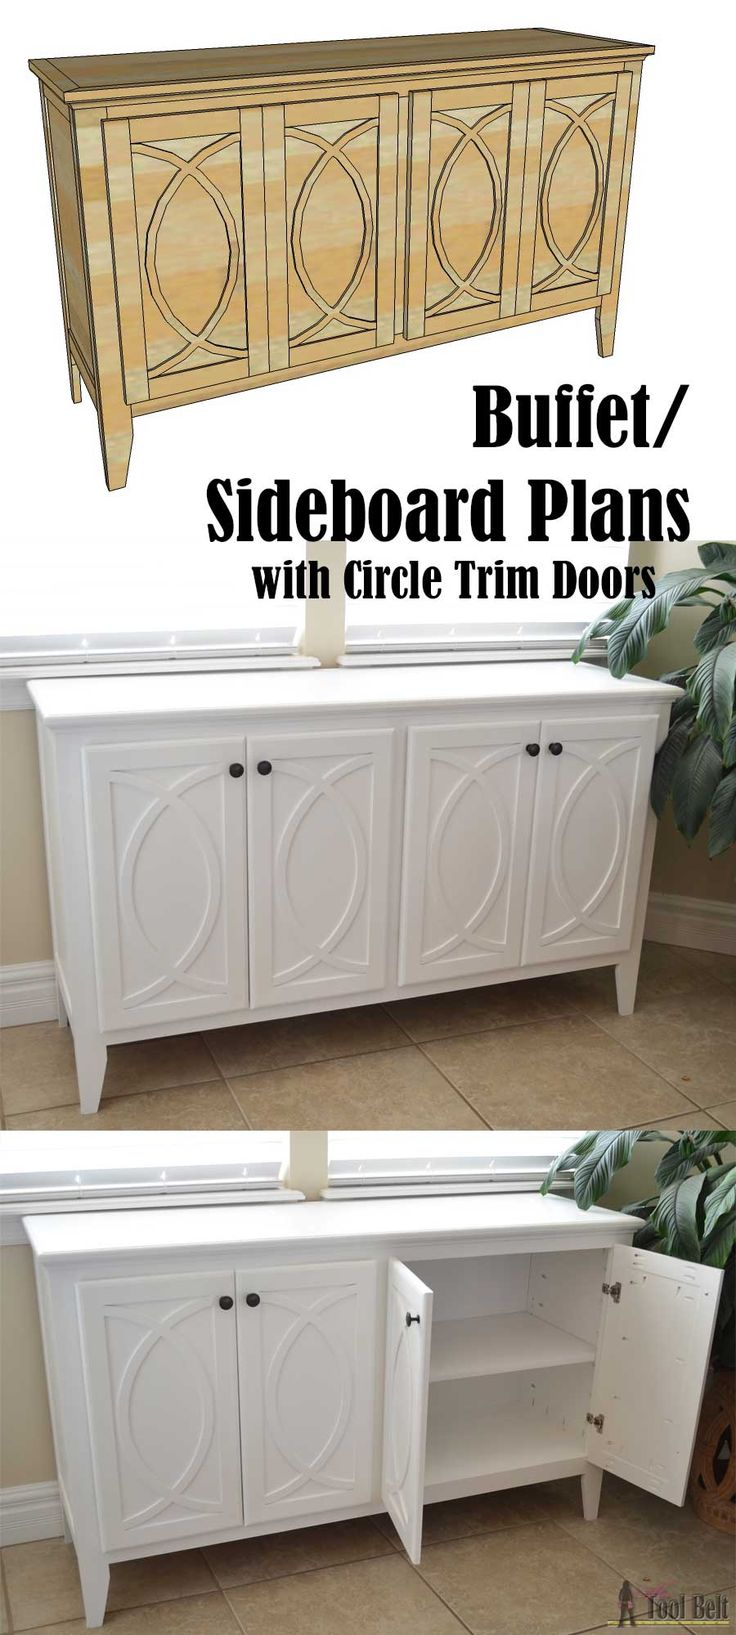 DIY Buffet or Sideboard with circle trim doors. This buffet cabinet boasts plenty of dining/kitchen supply storage. Free building plans.